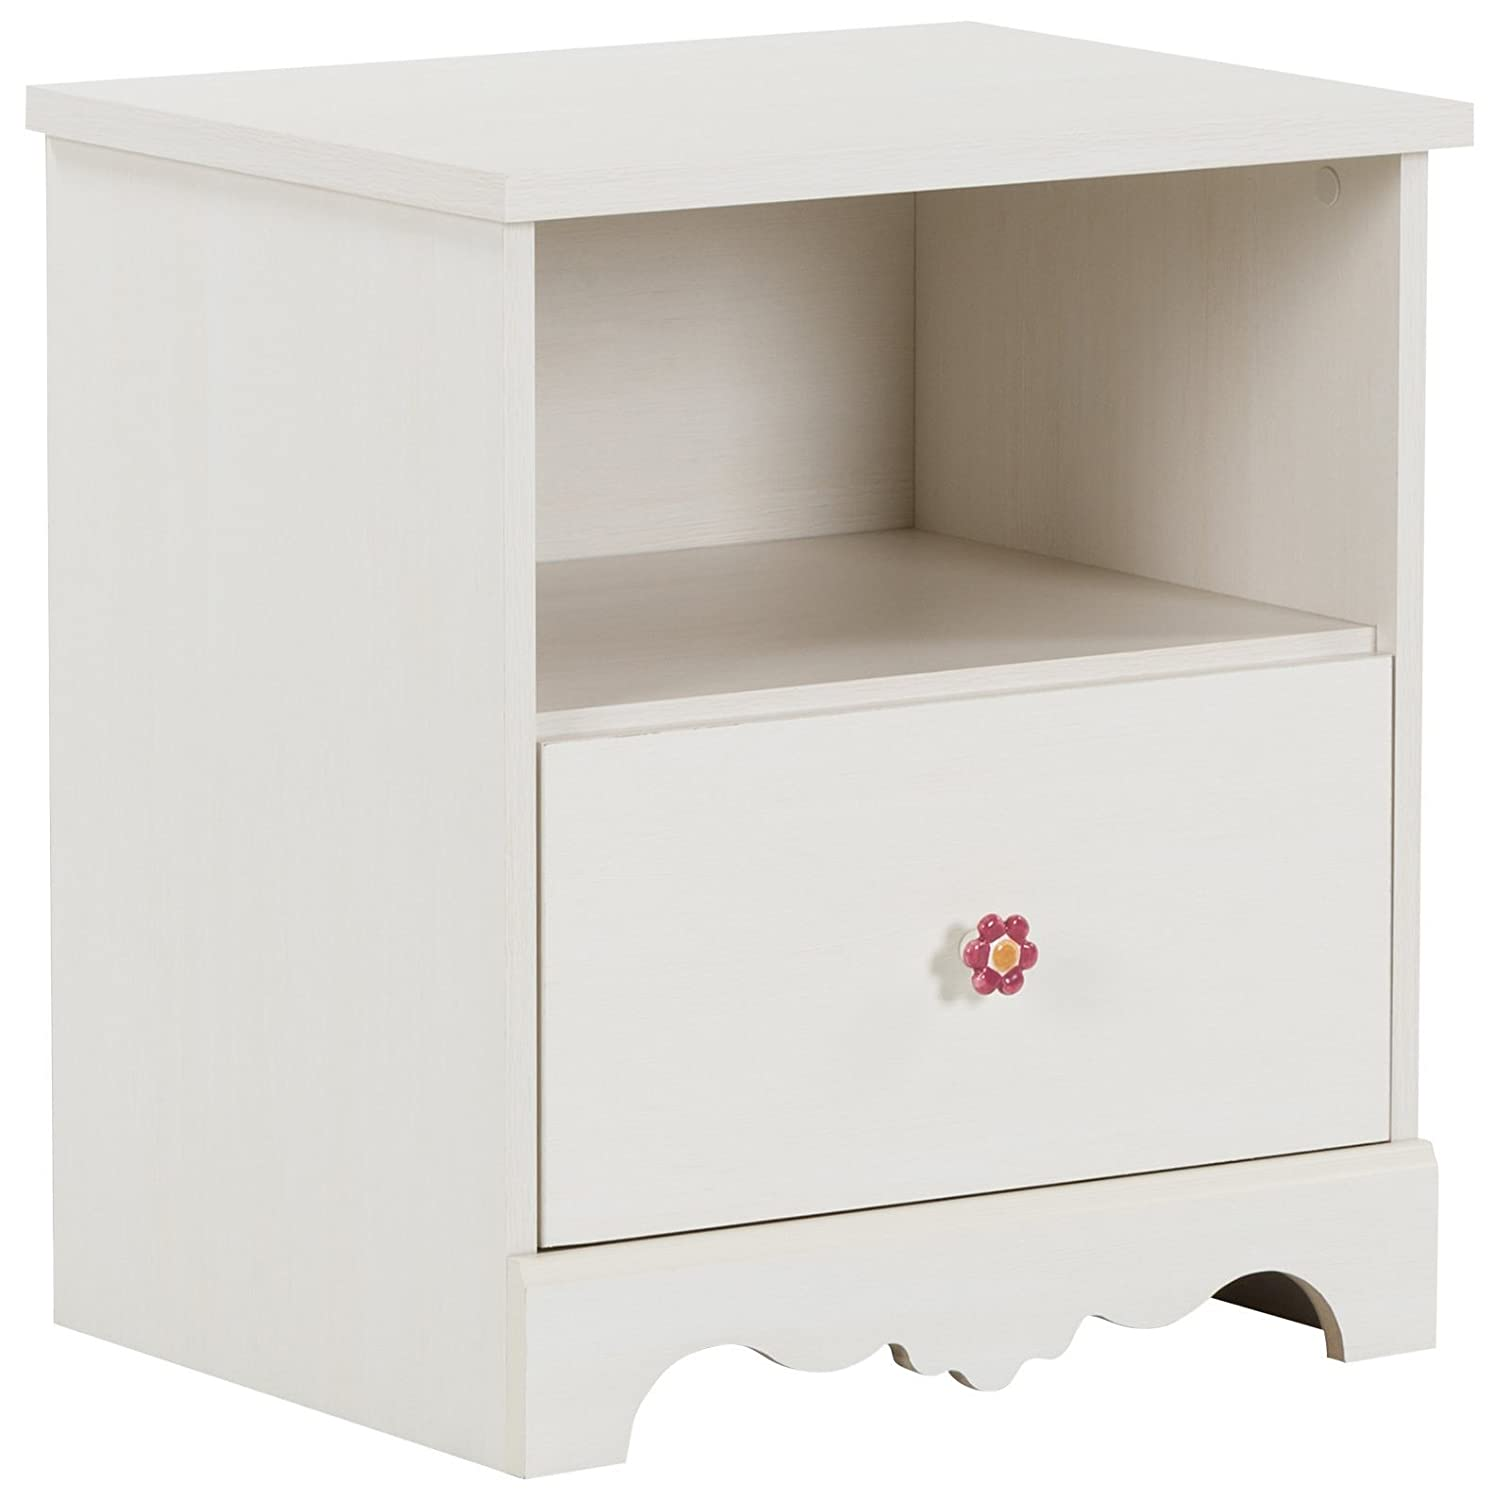 South Shore Furniture Lily Rose 1-Drawer Nightstand, White Wash 10076